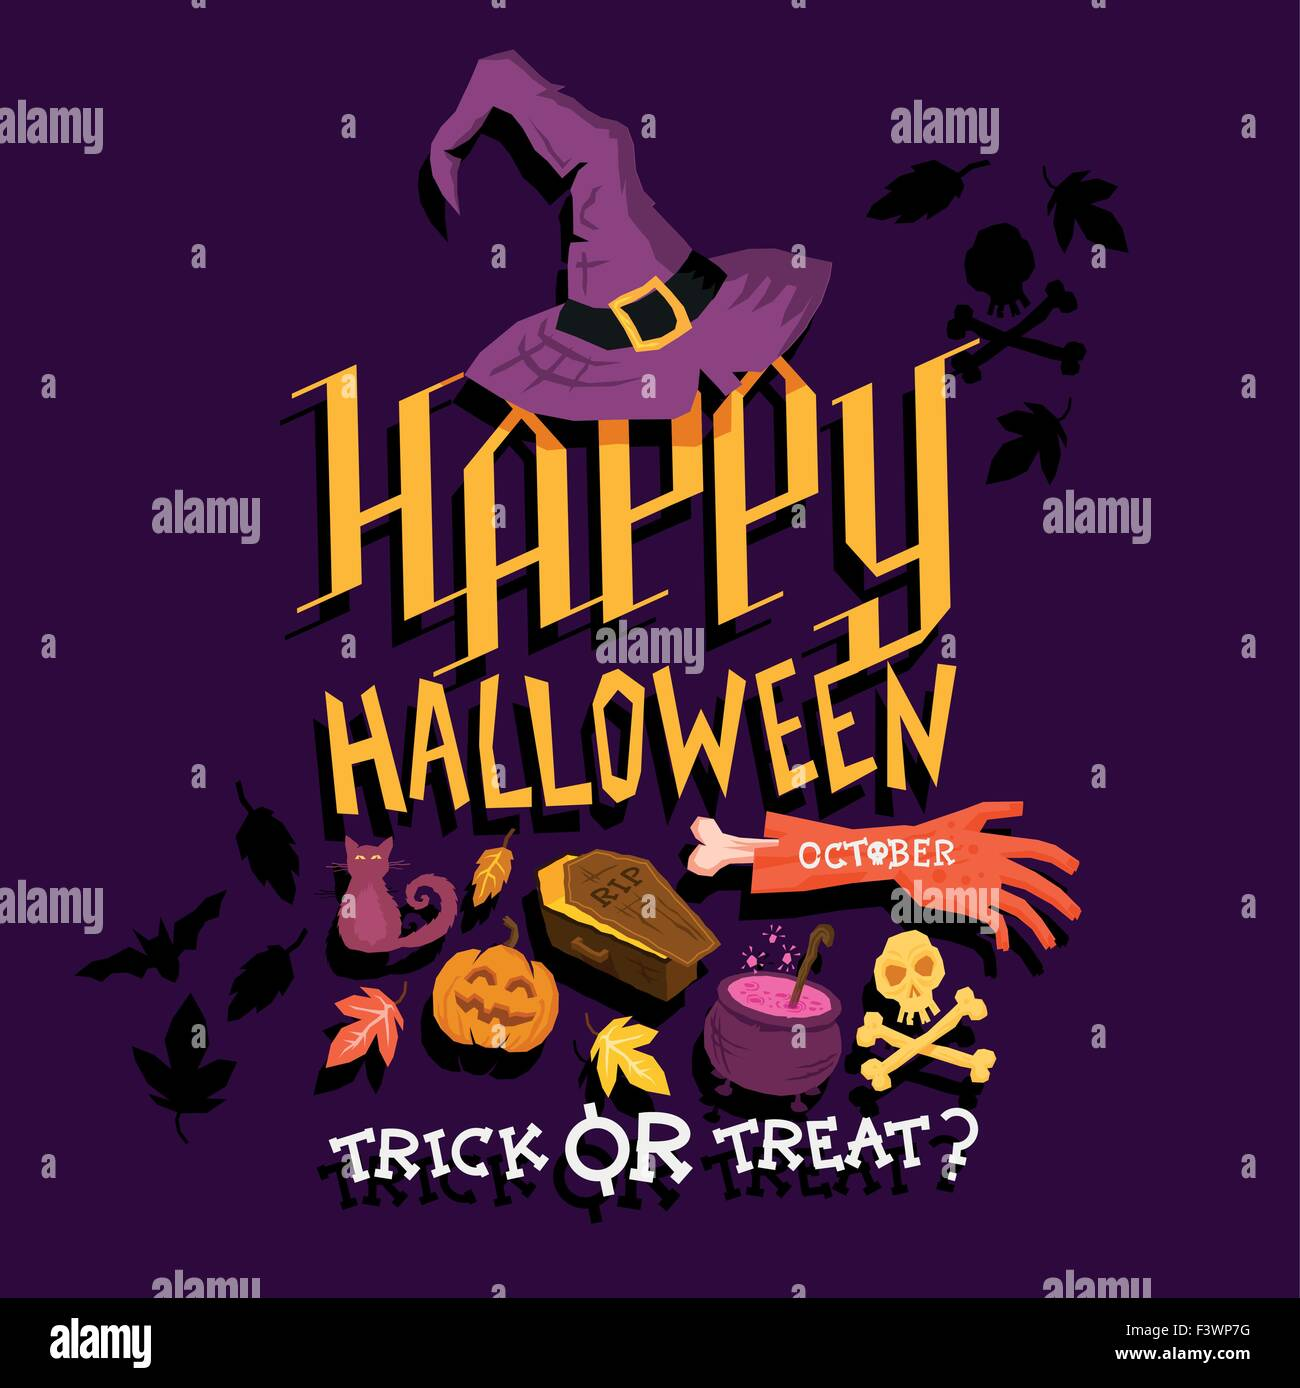 Spooky Halloween party poster design. Joyeux Halloween ! Vector illustration Illustration de Vecteur